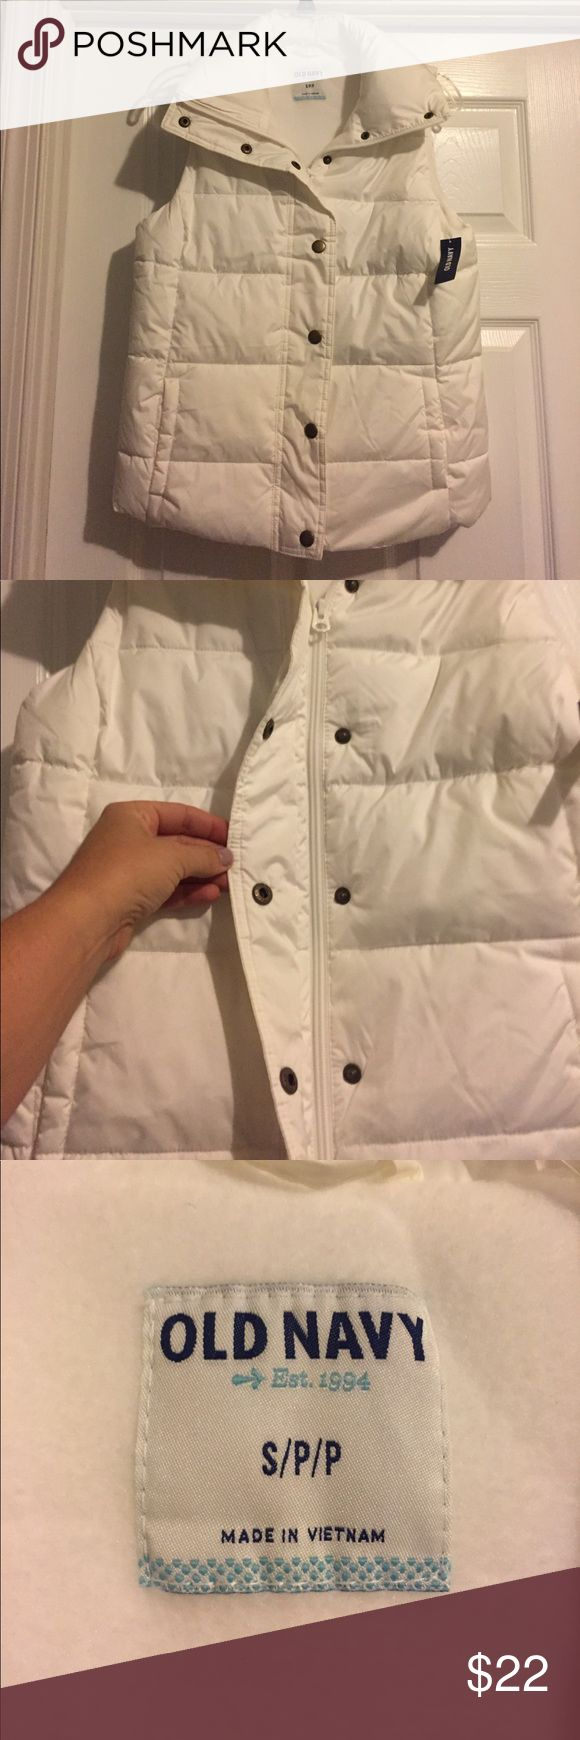 ITEM OF THE DAY! Old Navy winter vest, NWT. S. MARKED DOWN ITEM OF THE DAY! Old Navy winter vest, zipper and snap buttons. NWT. S. Old Navy Jackets & Coats Vests